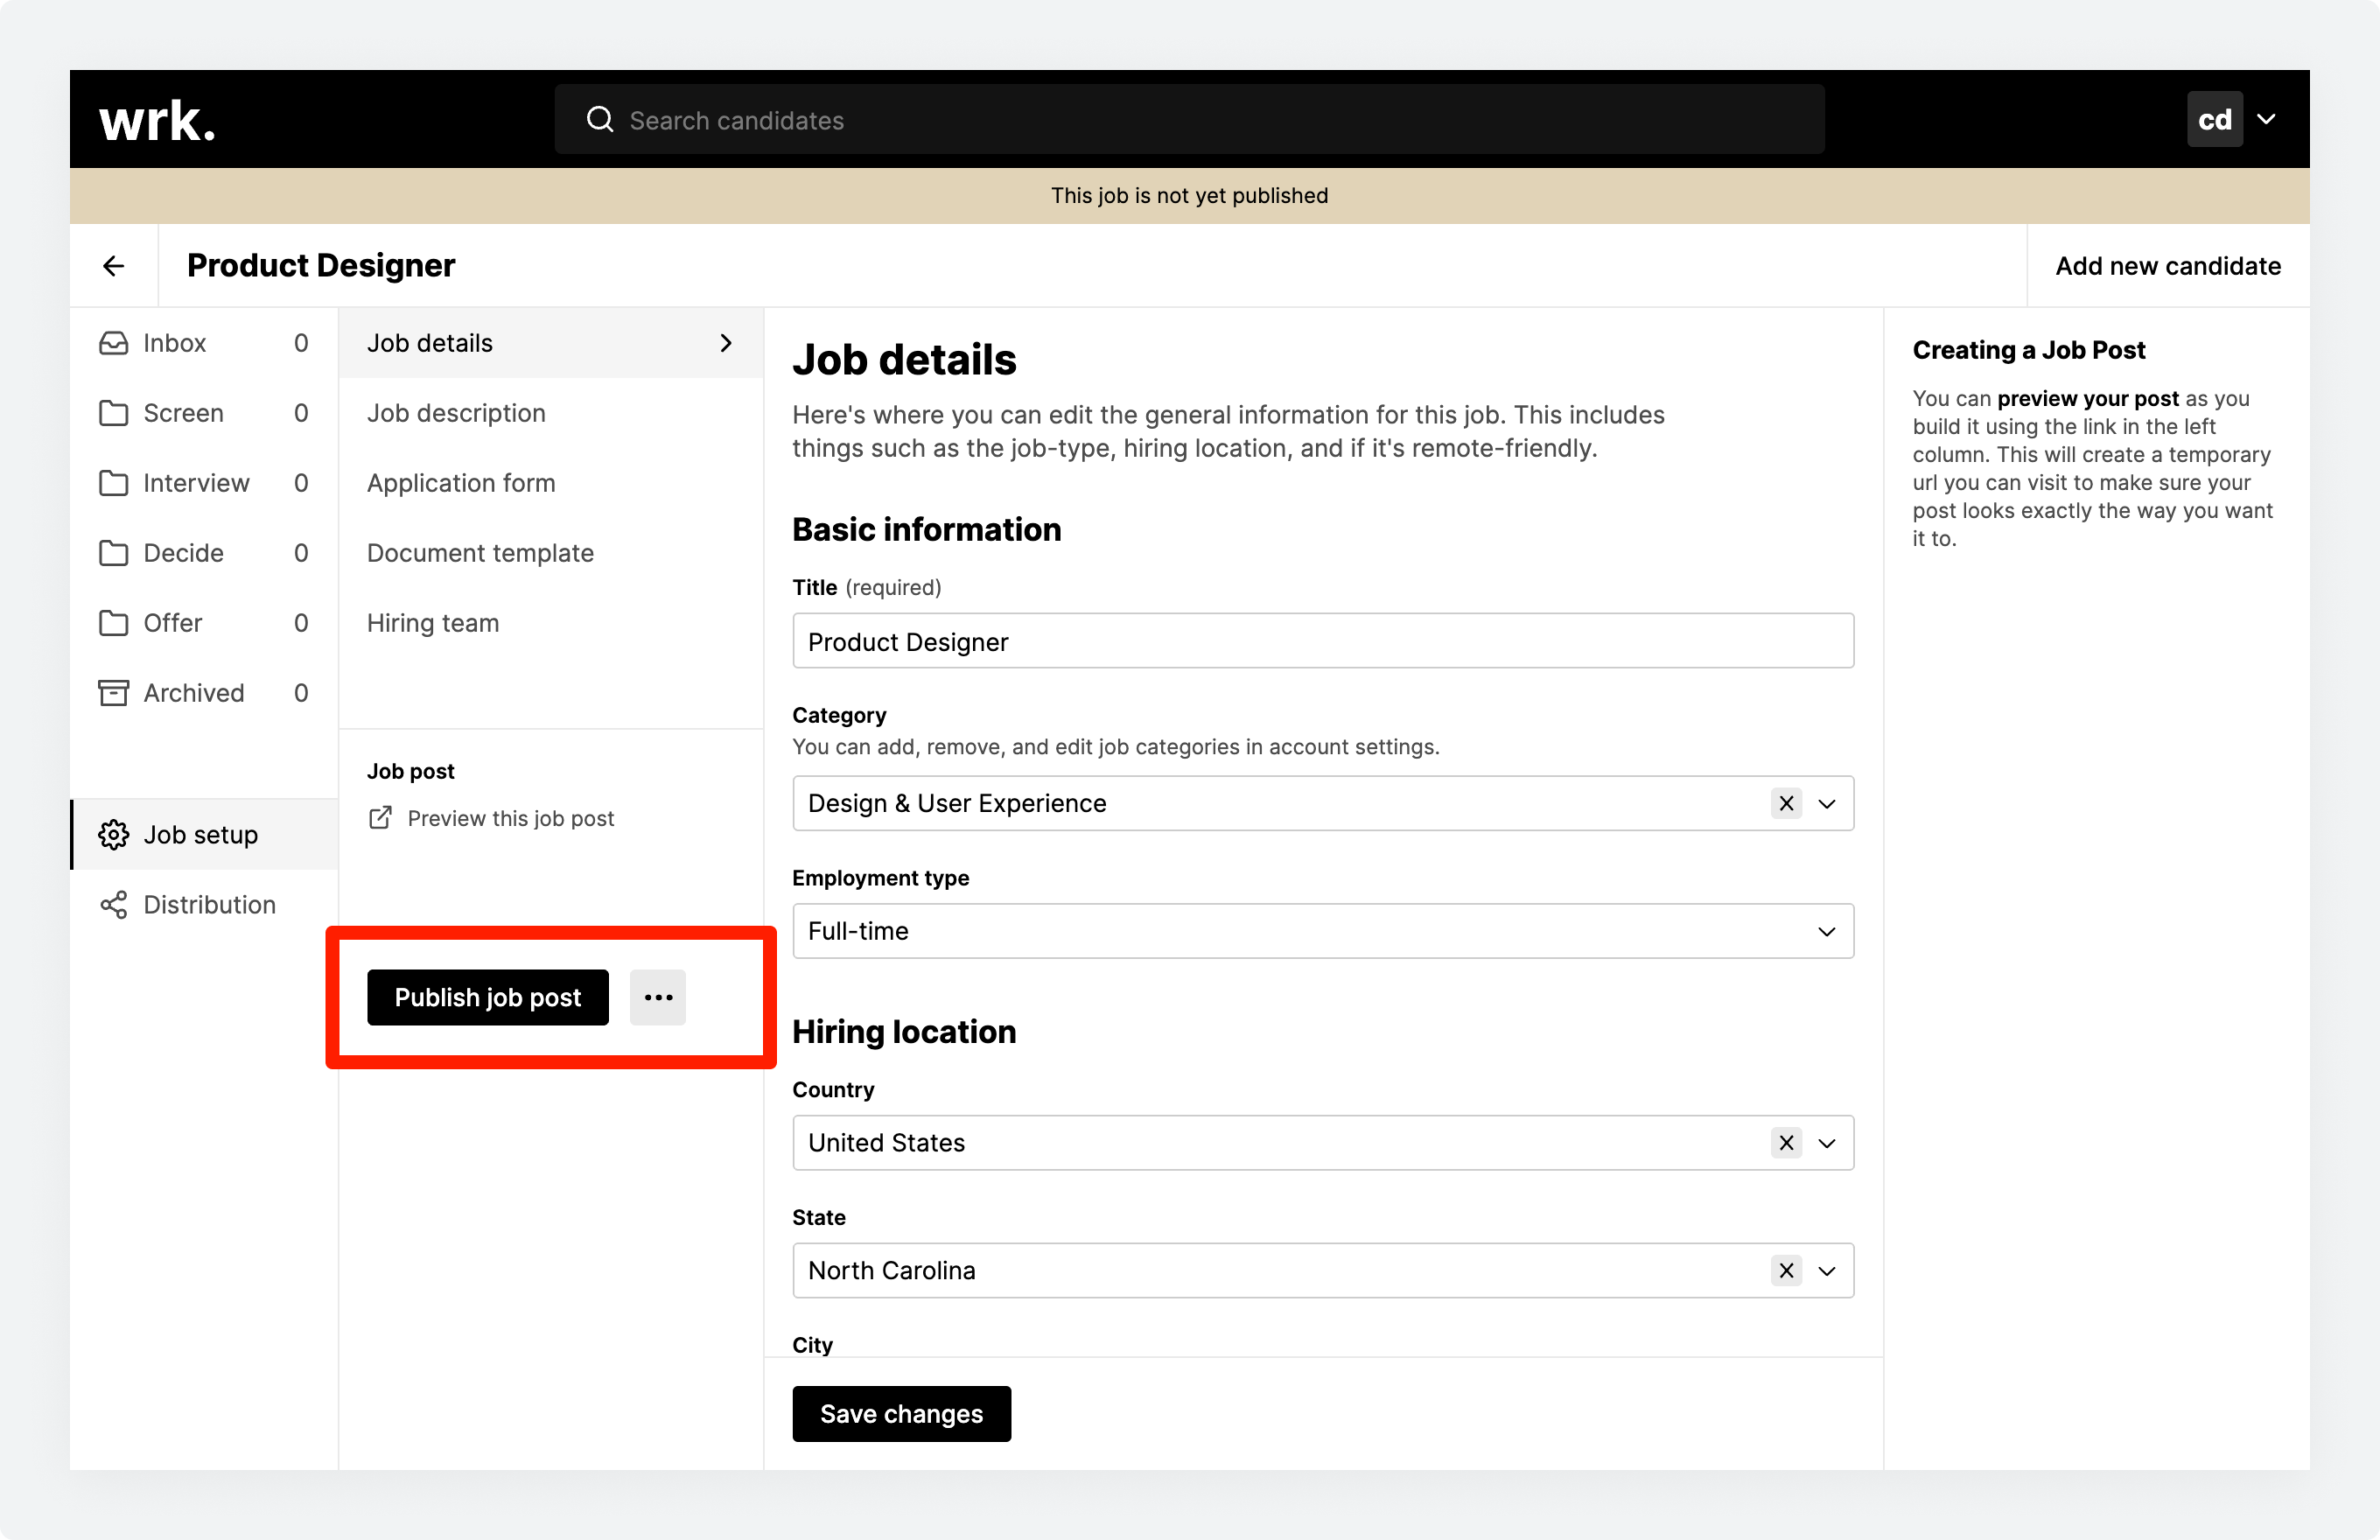 The Job setup section in Wrk with a job ready for publishing